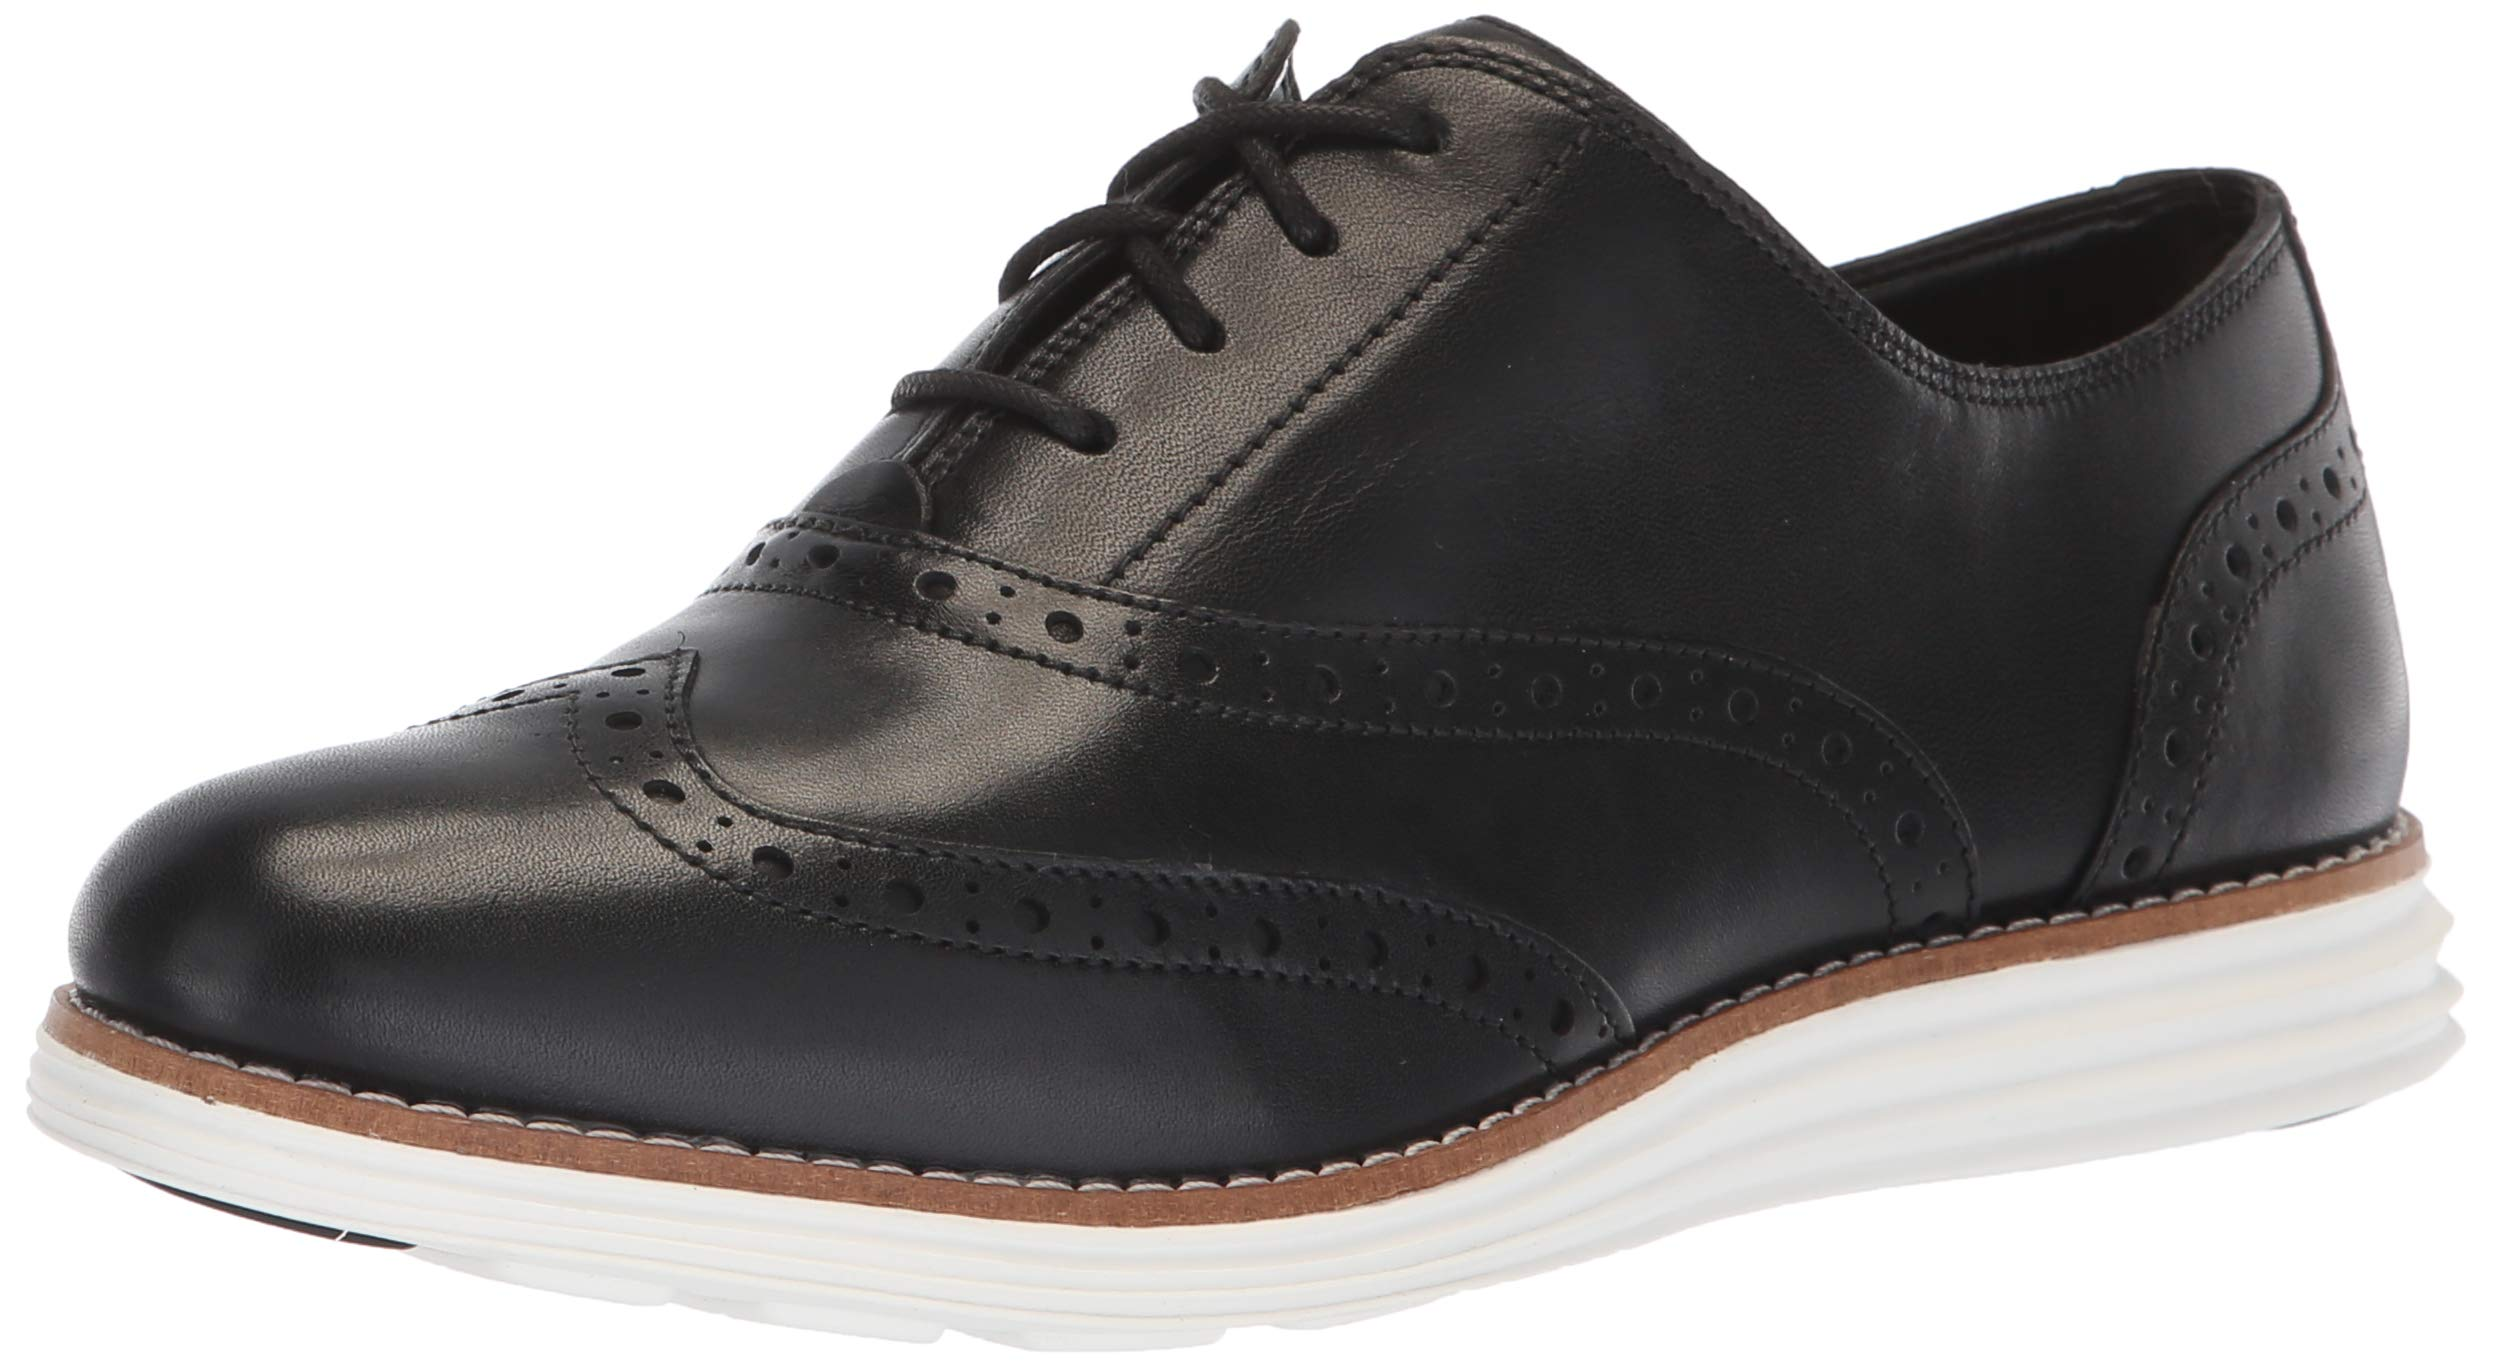 Cole Haan Women's Original Grand Wing Oxford, Black/Optic White 8.5 B US